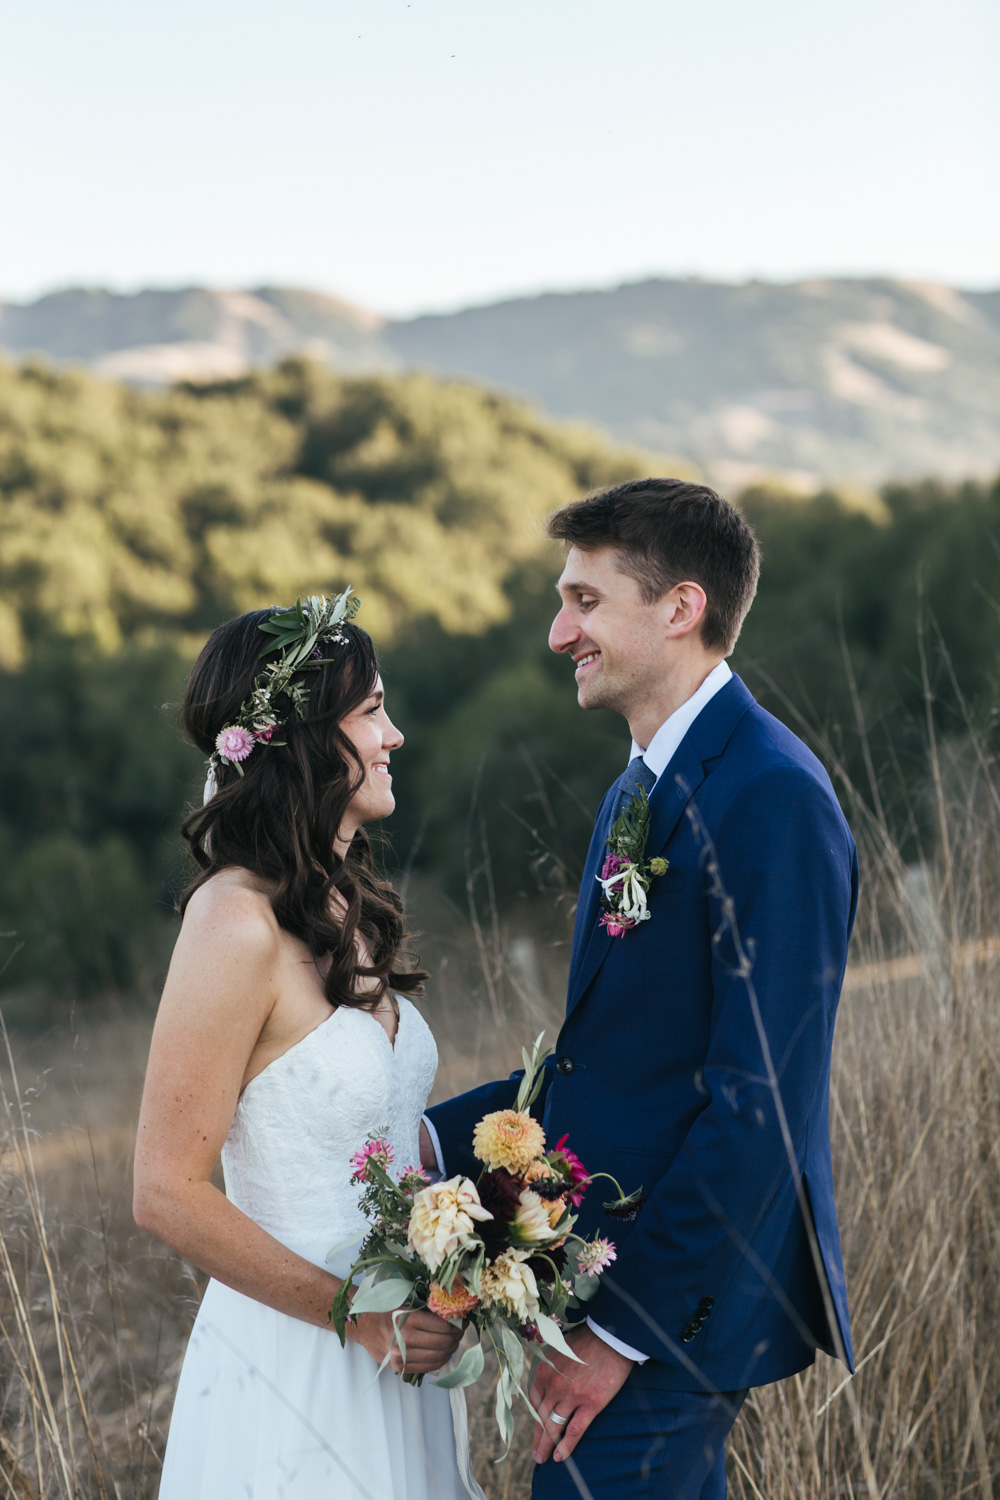 petaluma-sonoma-county-wedding-photographer-14.jpg